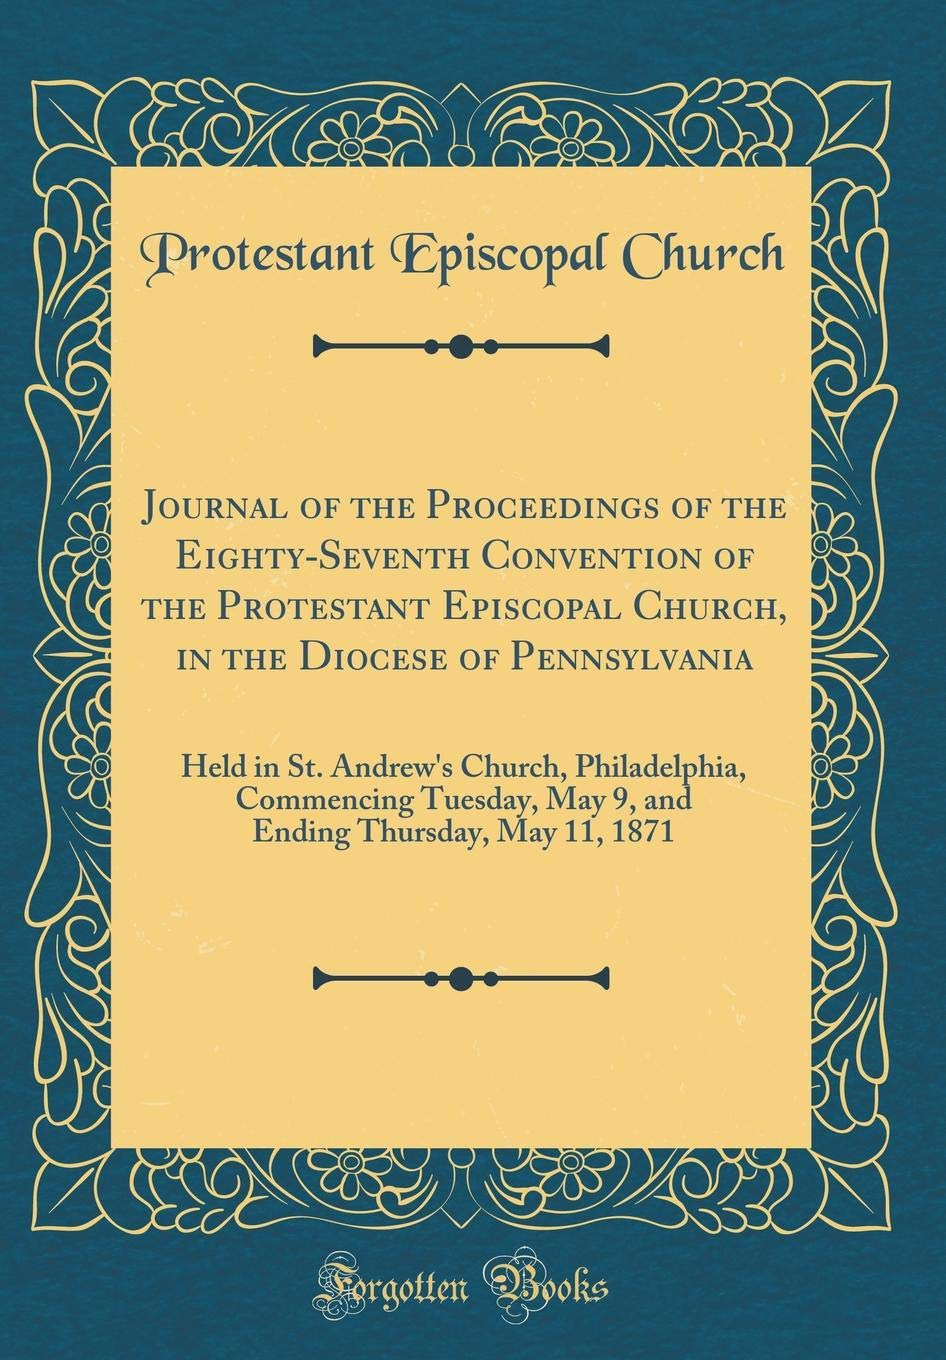 Download Journal of the Proceedings of the Eighty-Seventh Convention of the Protestant Episcopal Church, in the Diocese of Pennsylvania: Held in St. Andrew's ... Thursday, May 11, 1871 (Classic Reprint) ebook